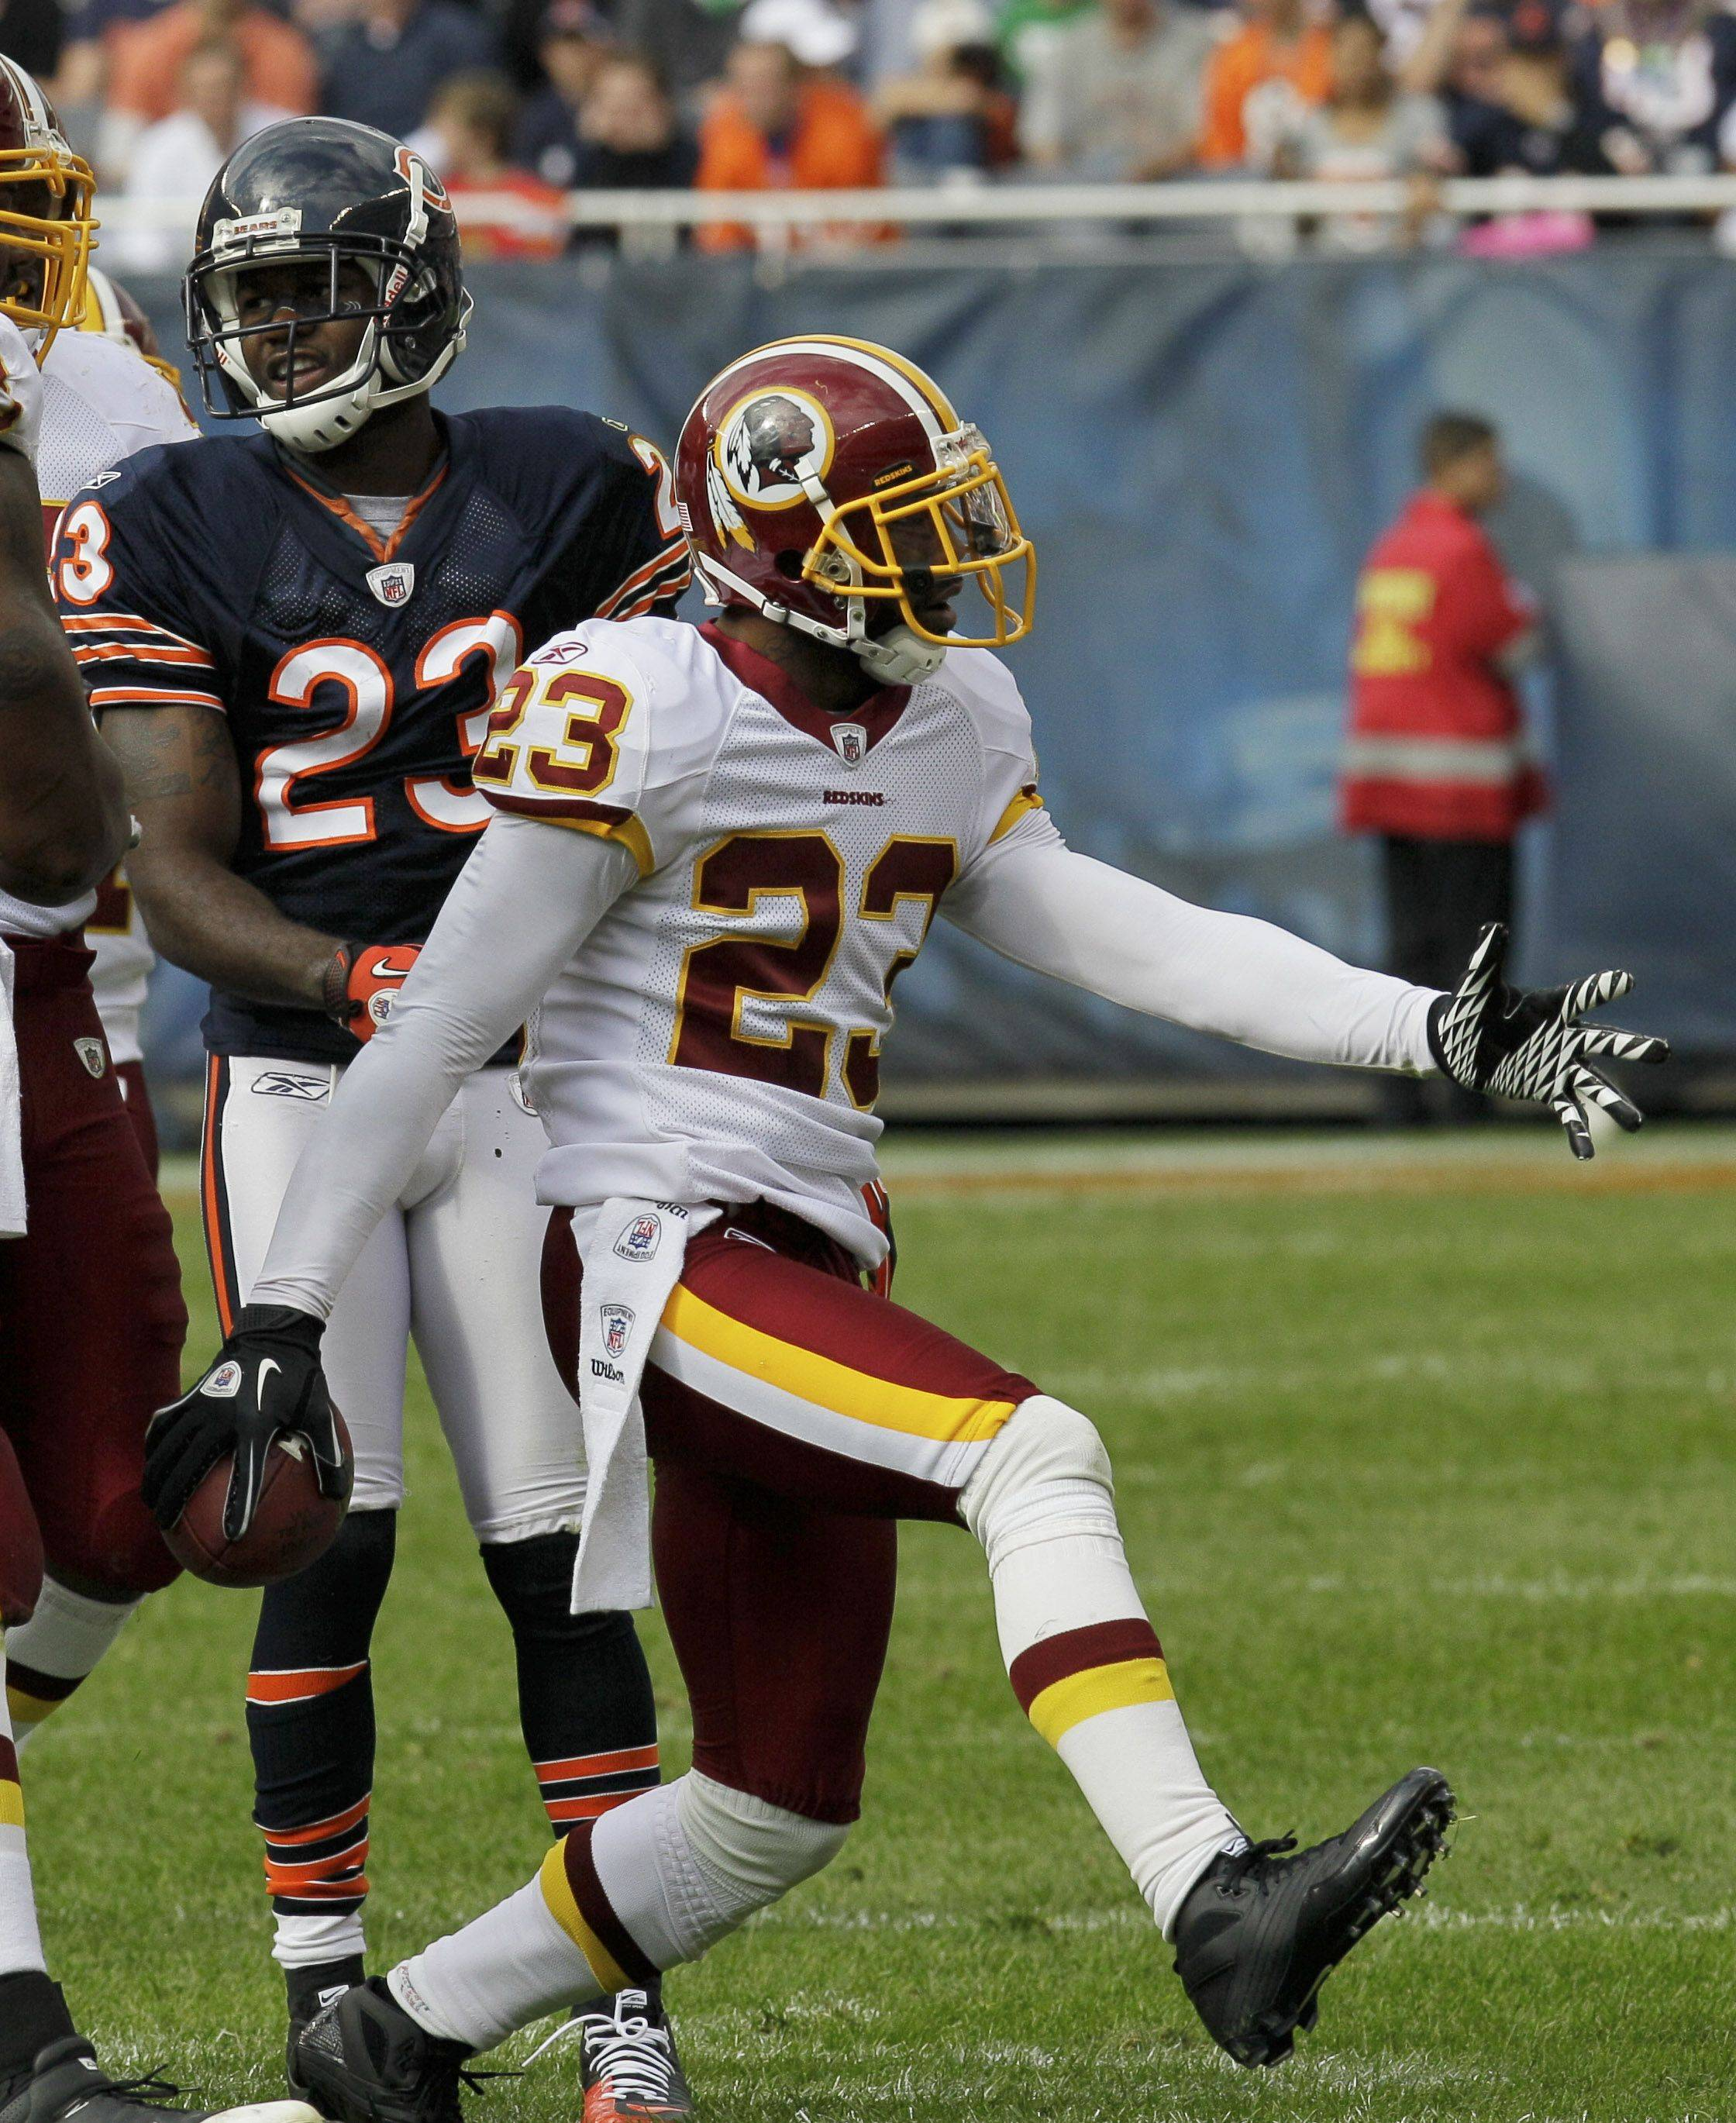 Washington Redskins cornerback DeAngelo Hall celebrates after intercepting a Chicago Bears pass in the second half. Looking on is Bears wide receiver Devin Hester.